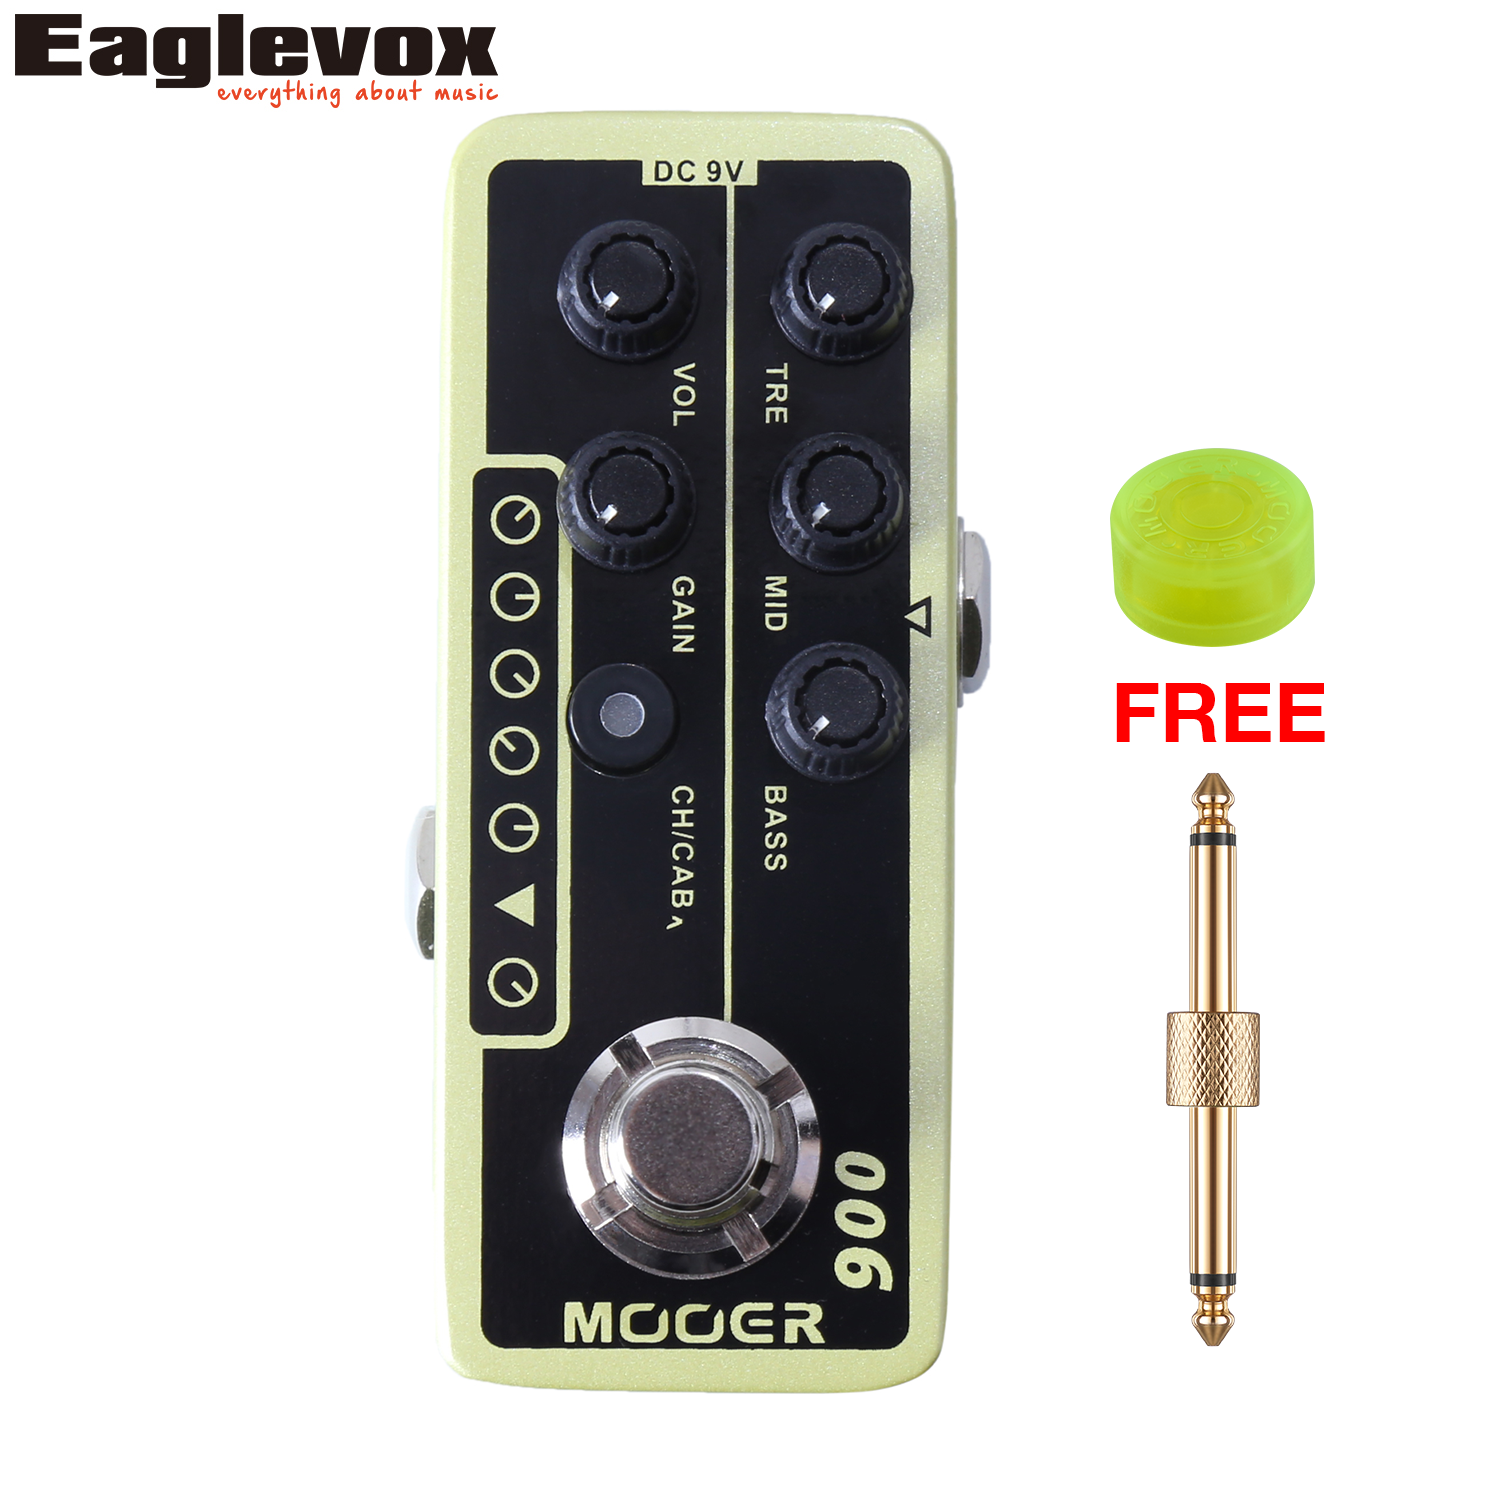 цена на Mooer 006 Classic Deluxe Micro Preamp 3 band EQ Gain Volume Control Dual Channel Guitar Effect Pedal with Free Gift